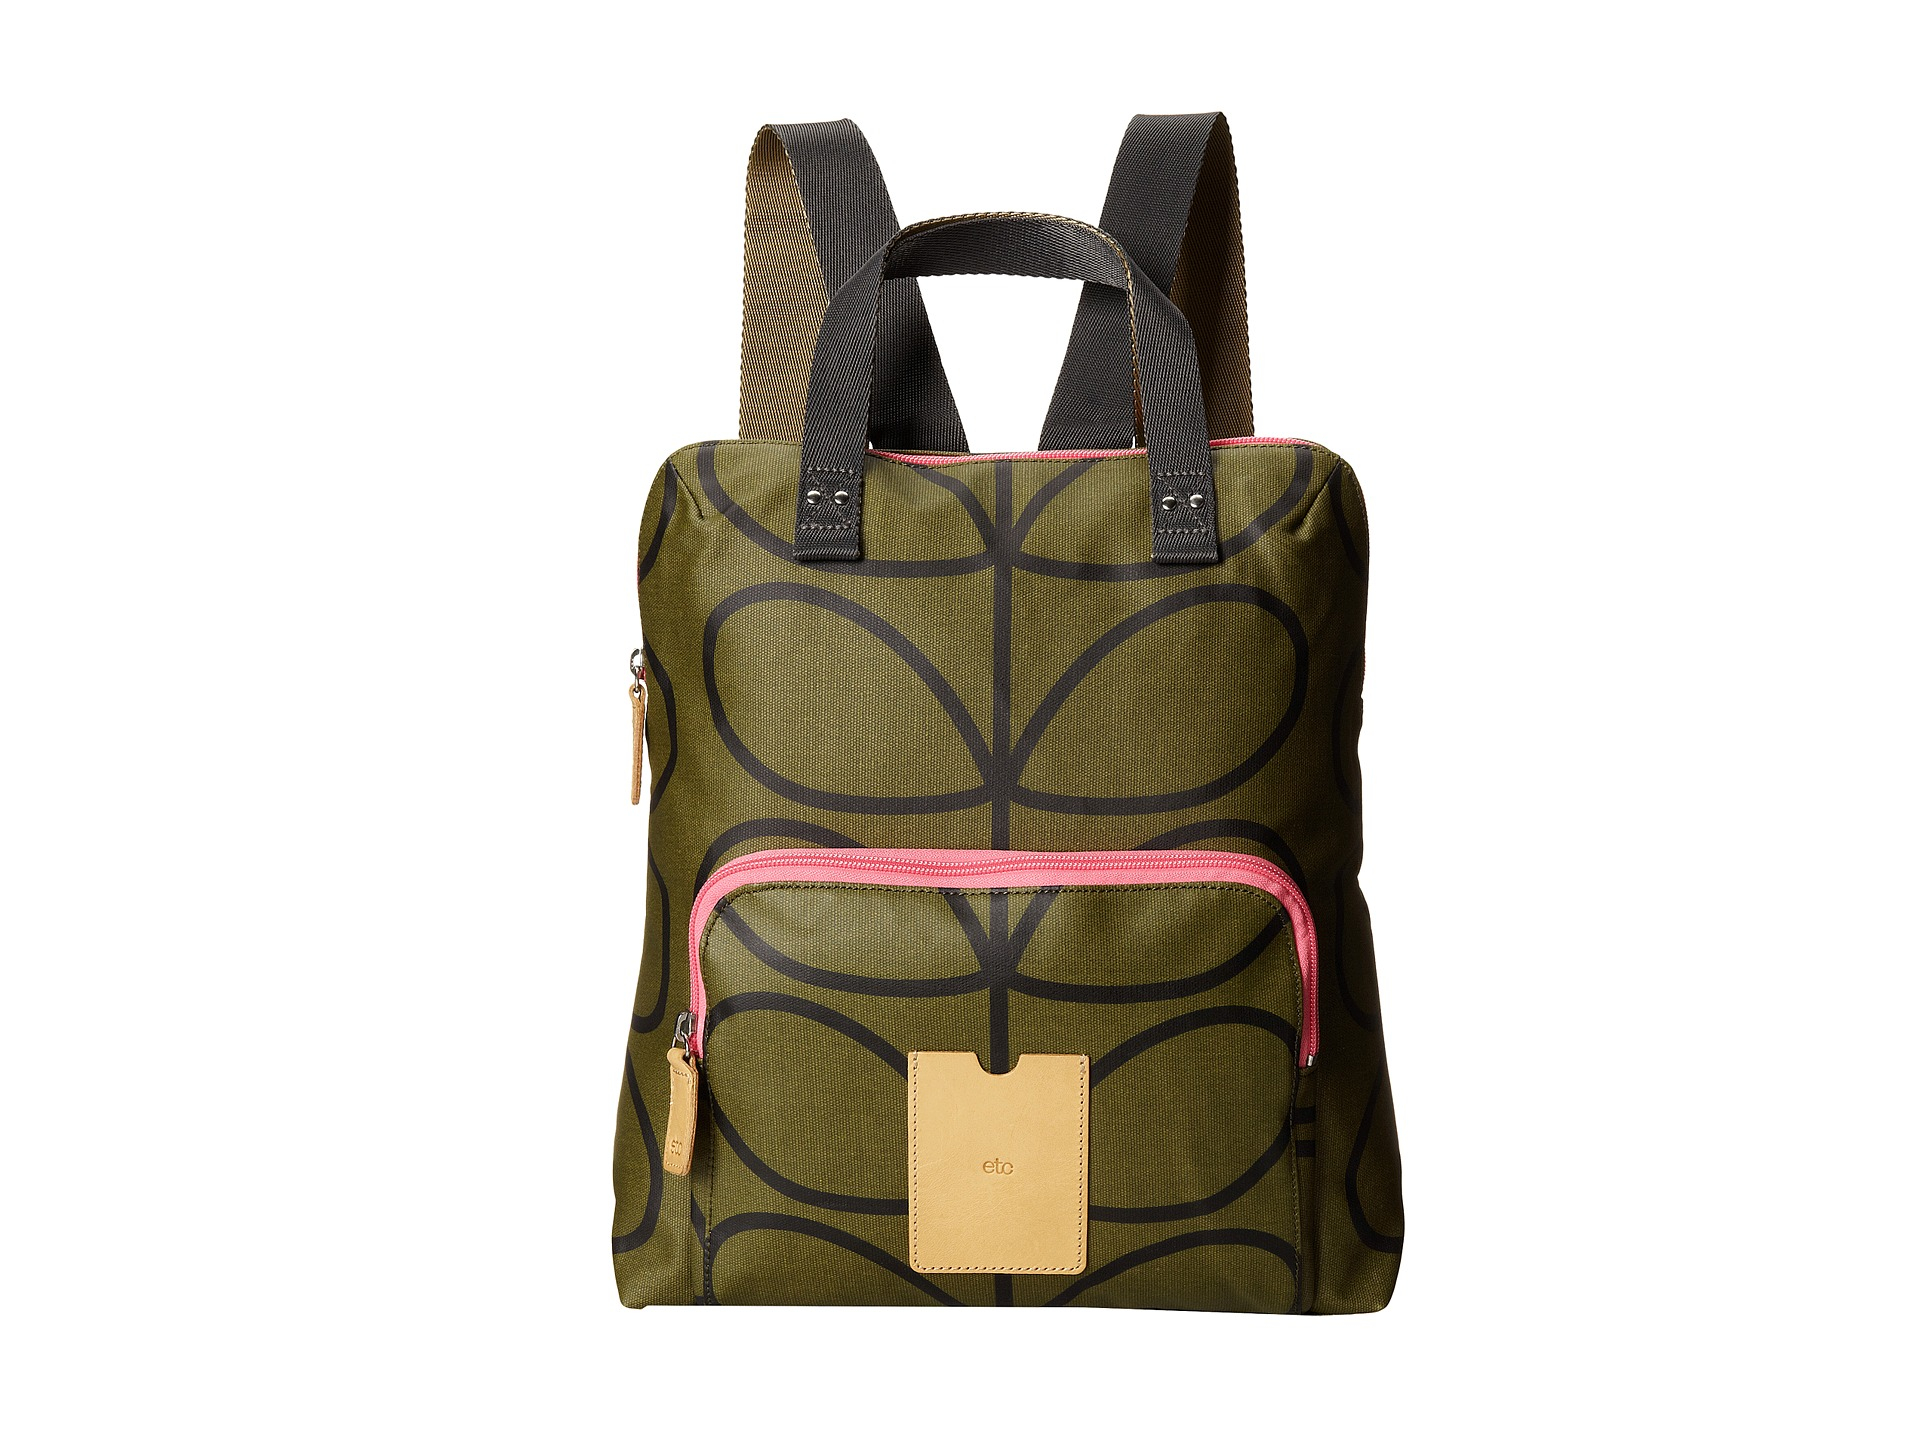 1dfccc965cca Lyst - Orla Kiely Giant Linear Stem Backpack Tote in Green